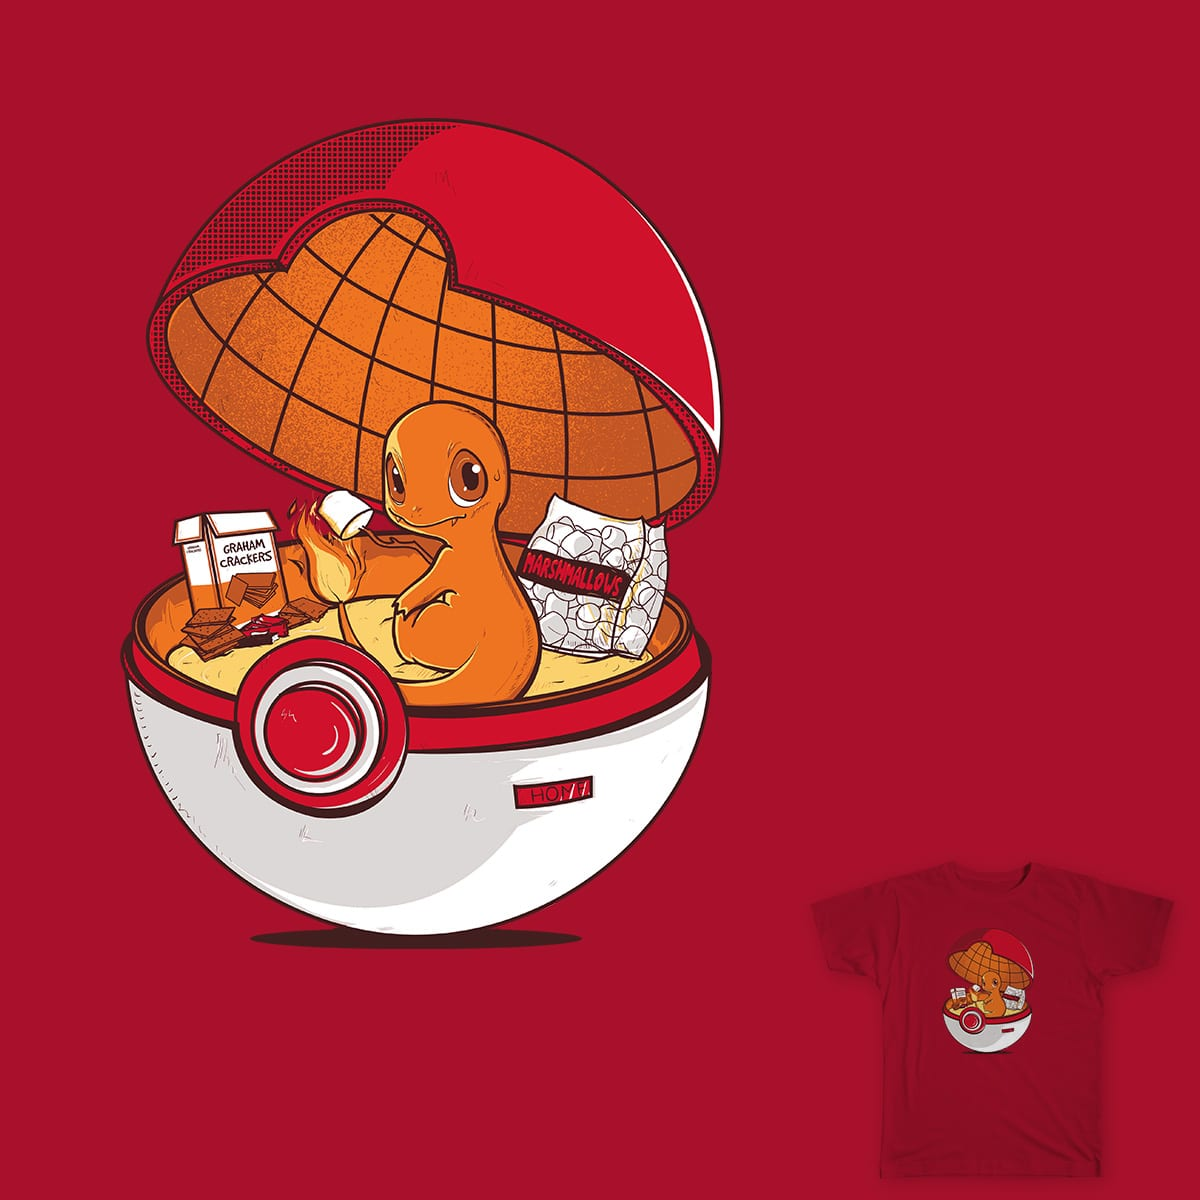 Red Pokehouse by Donniiie on Threadless